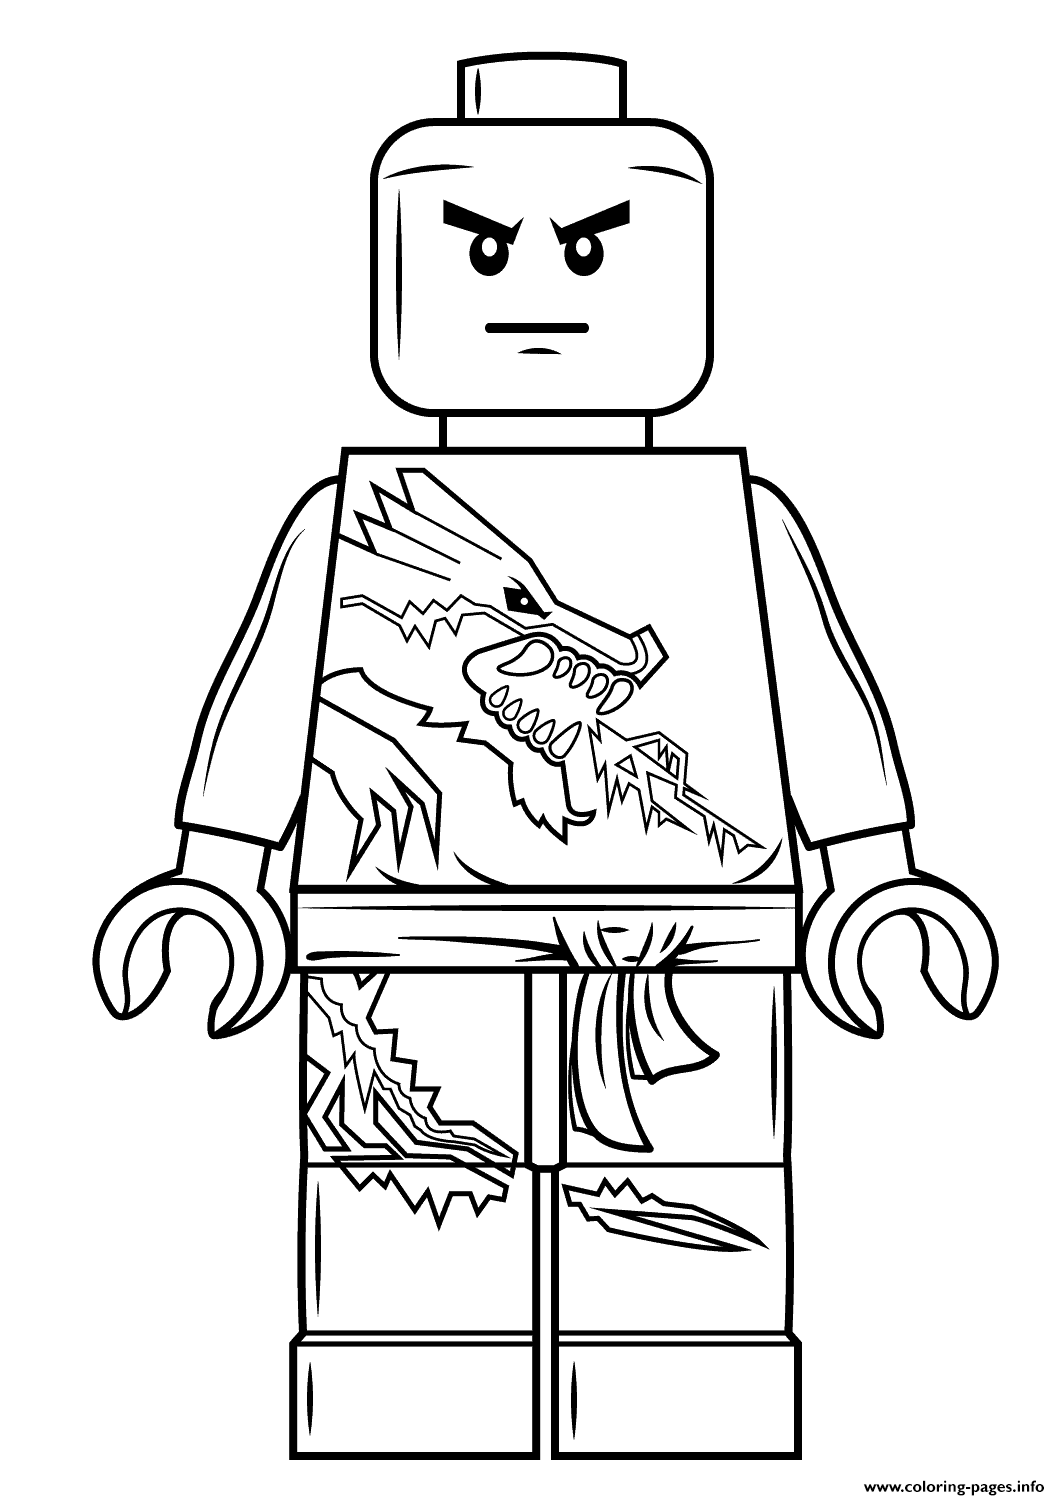 Print Lego Ninjago Zane Coloring Pages Ninjago Coloring Pages Lego Coloring Pages Coloring Pages For Boys